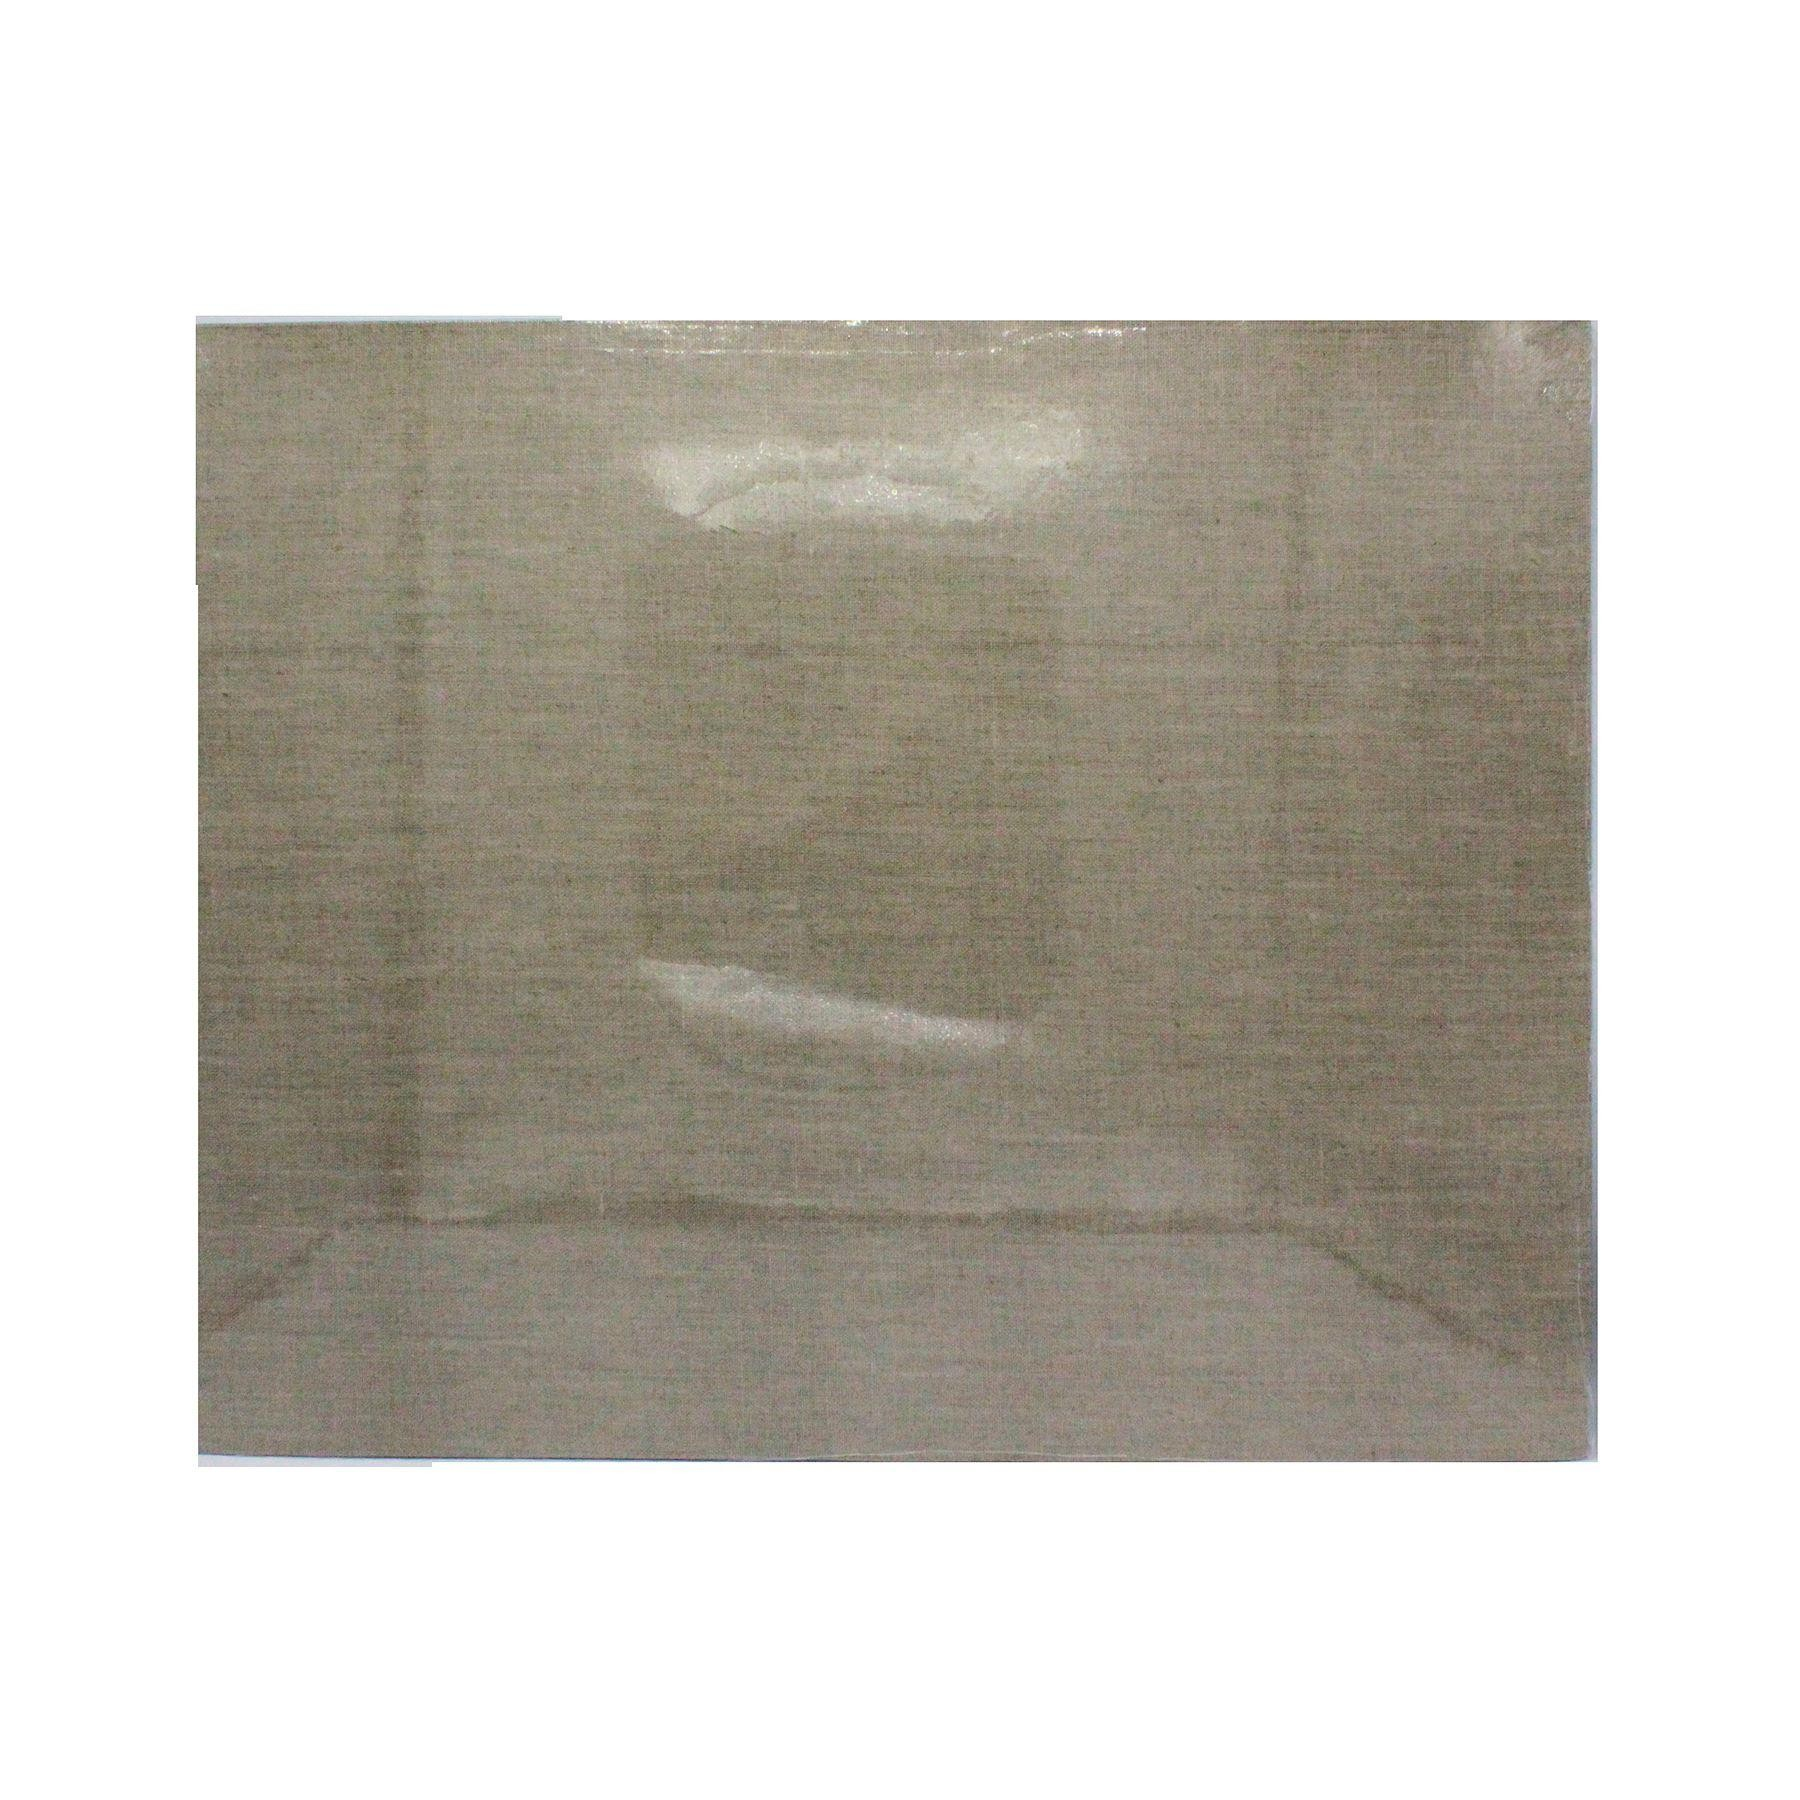 loxley artists natural canvas panel 20 x 16